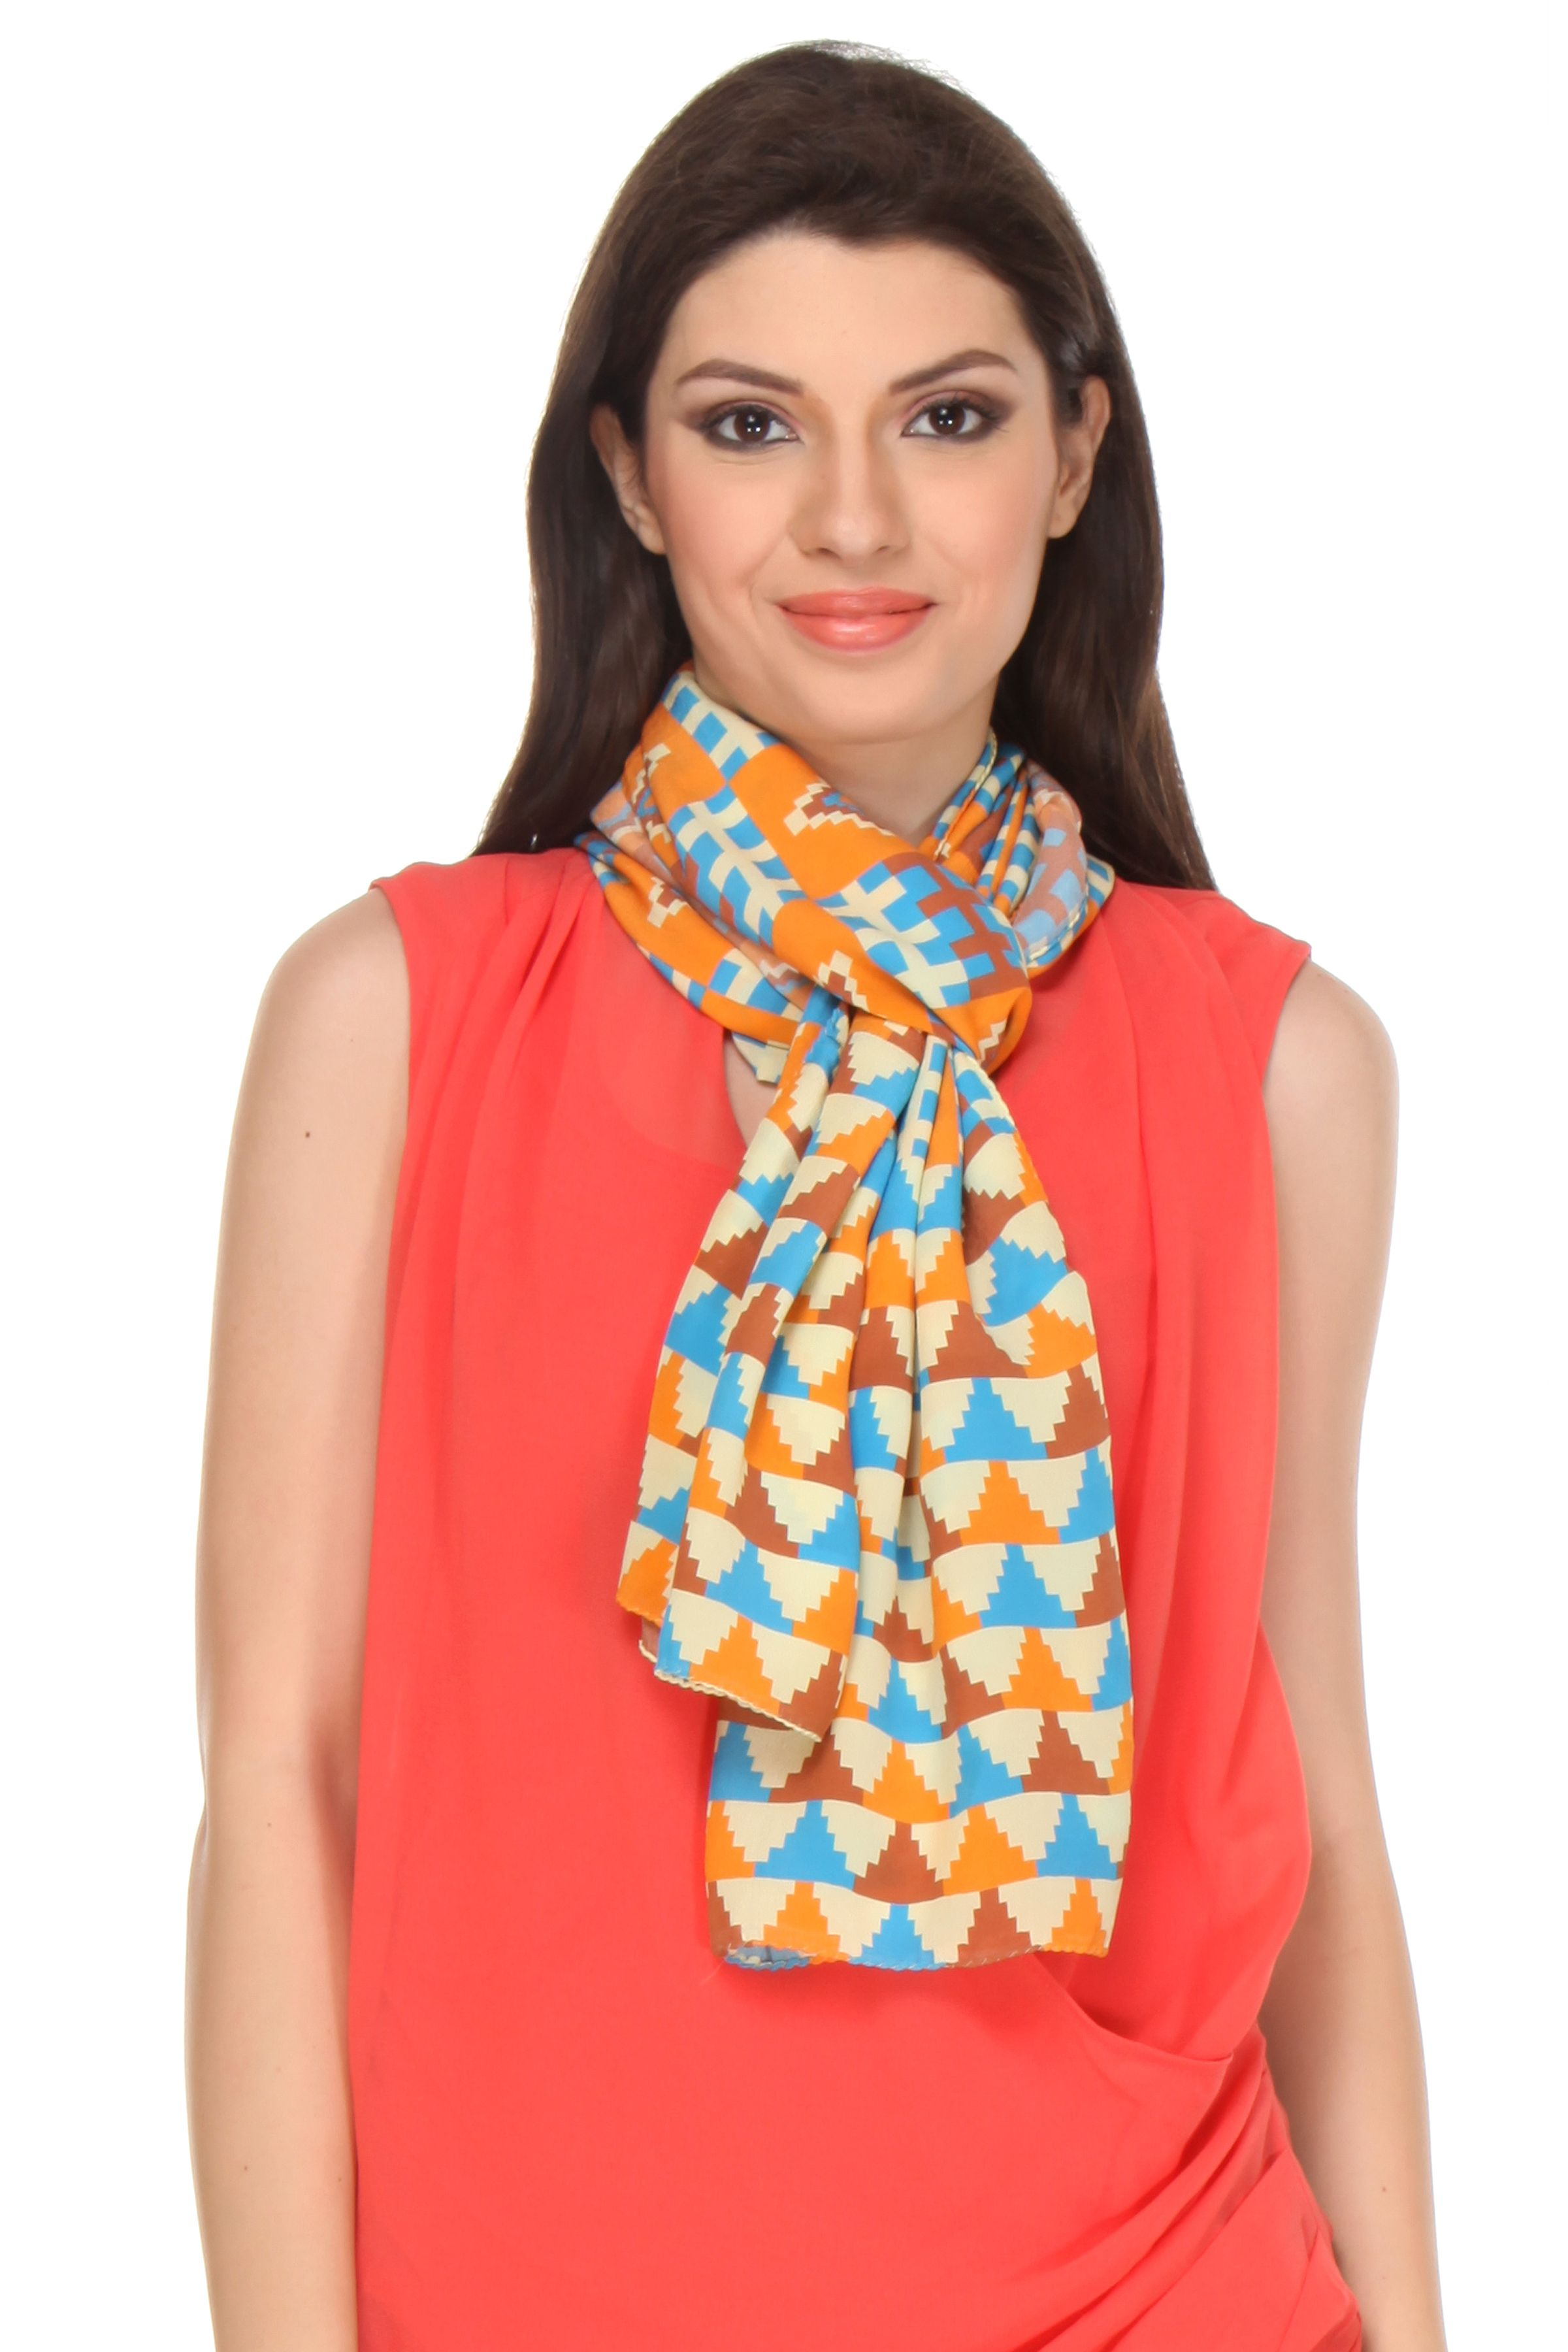 a45c43adaf9 Bhumi Chitra Art Scarf This digital printed crepe silk scarf gets its  design inspiration from Bhumi Chitra